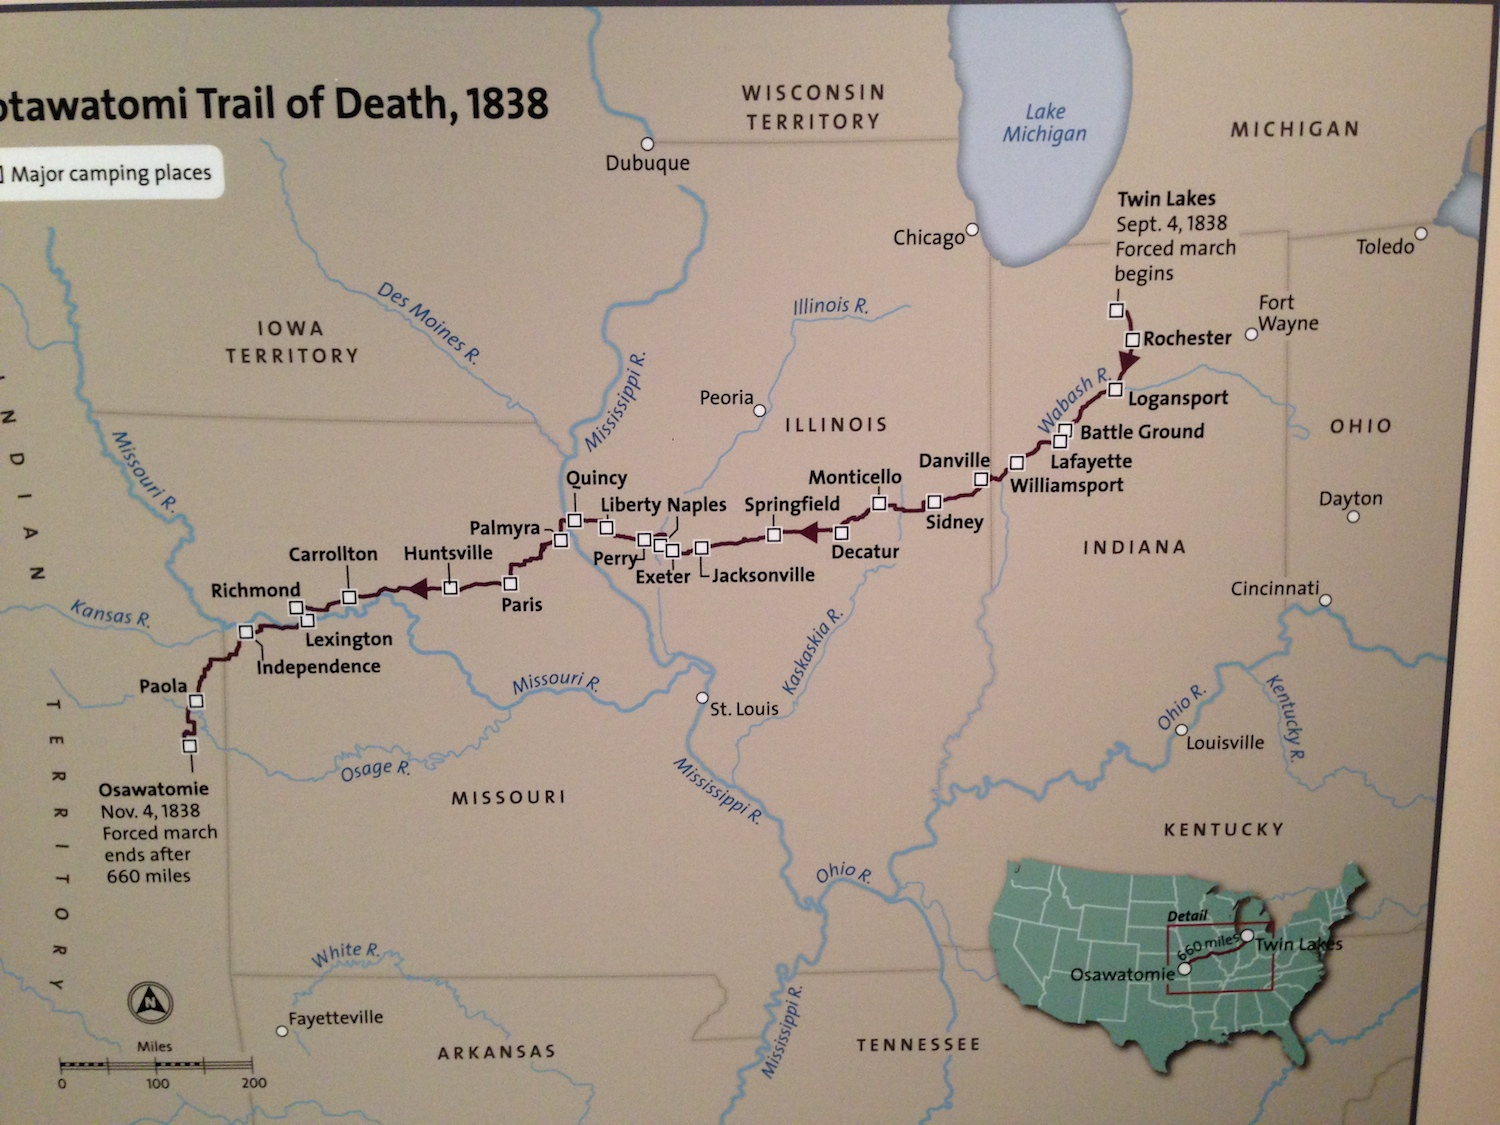 The March of the Potawatomi